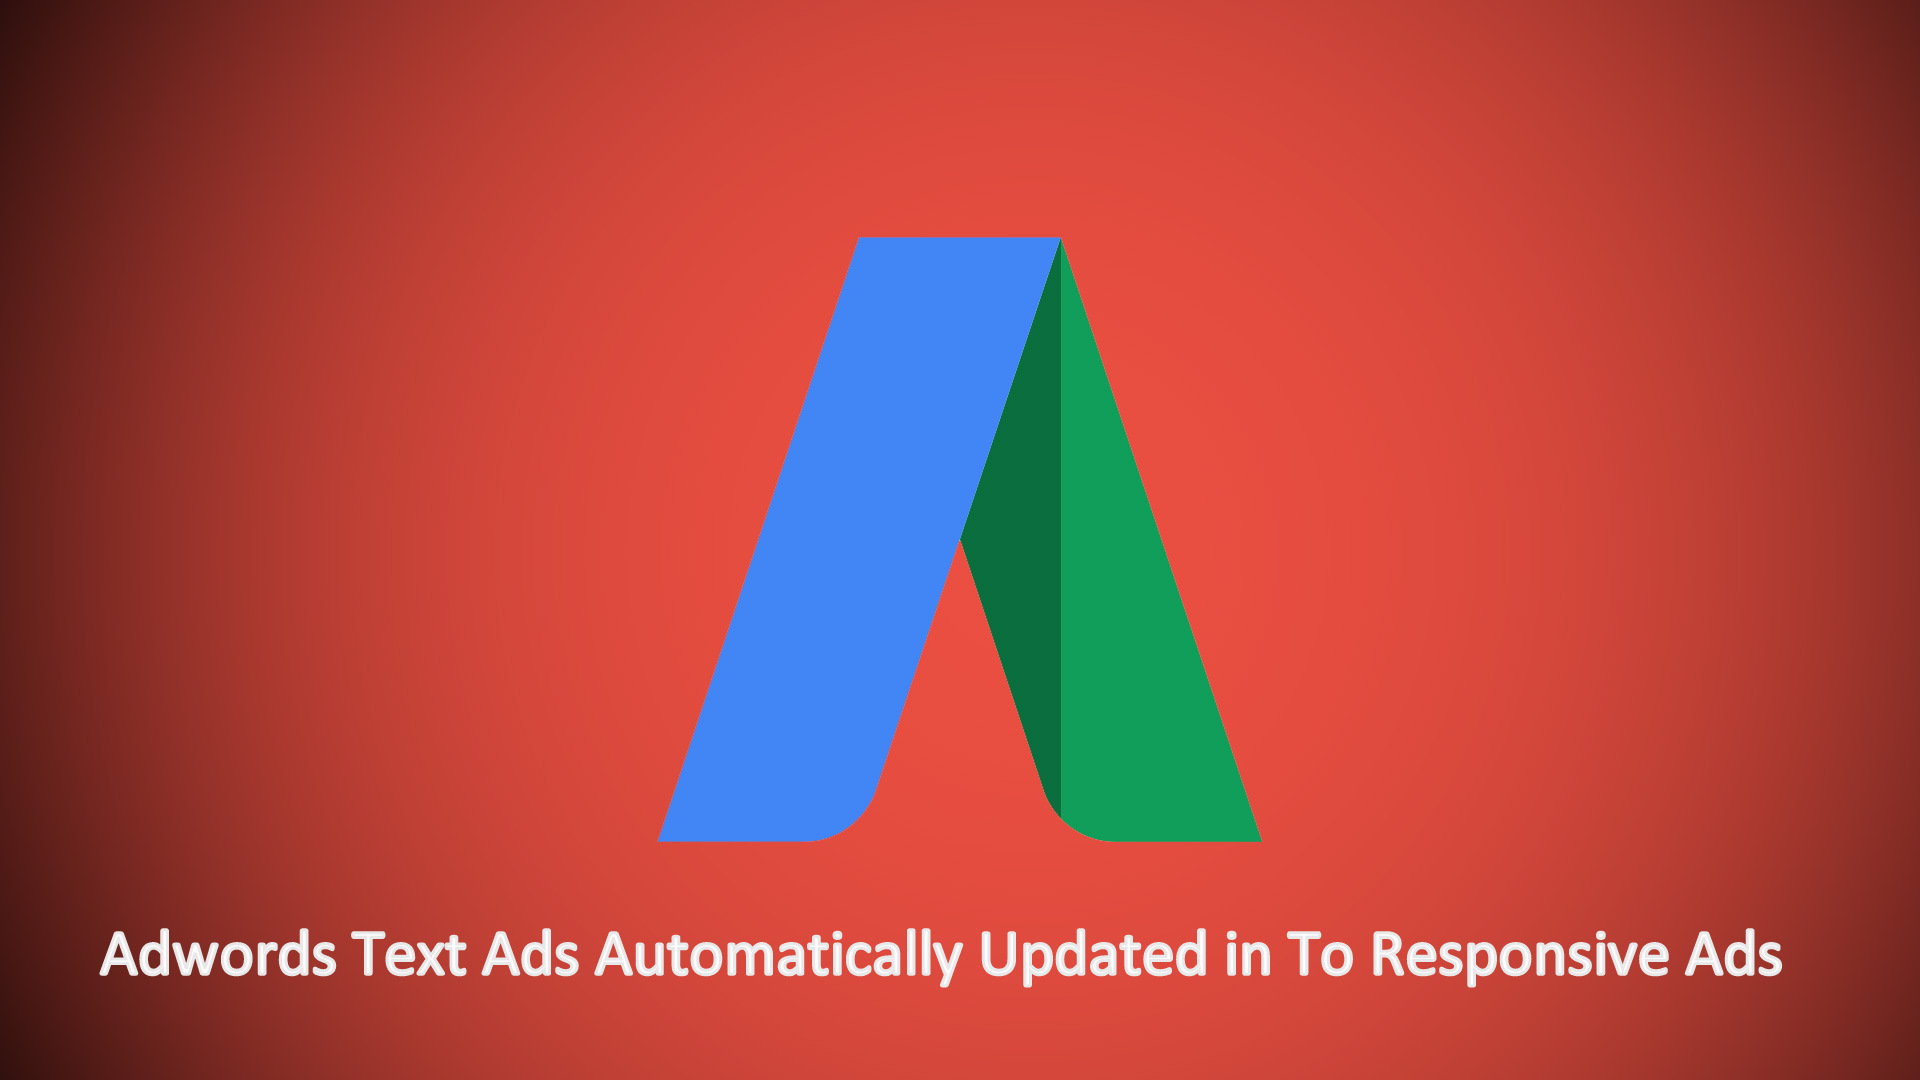 Adwords Text Ads Automatically Updated in To Responsive Ads